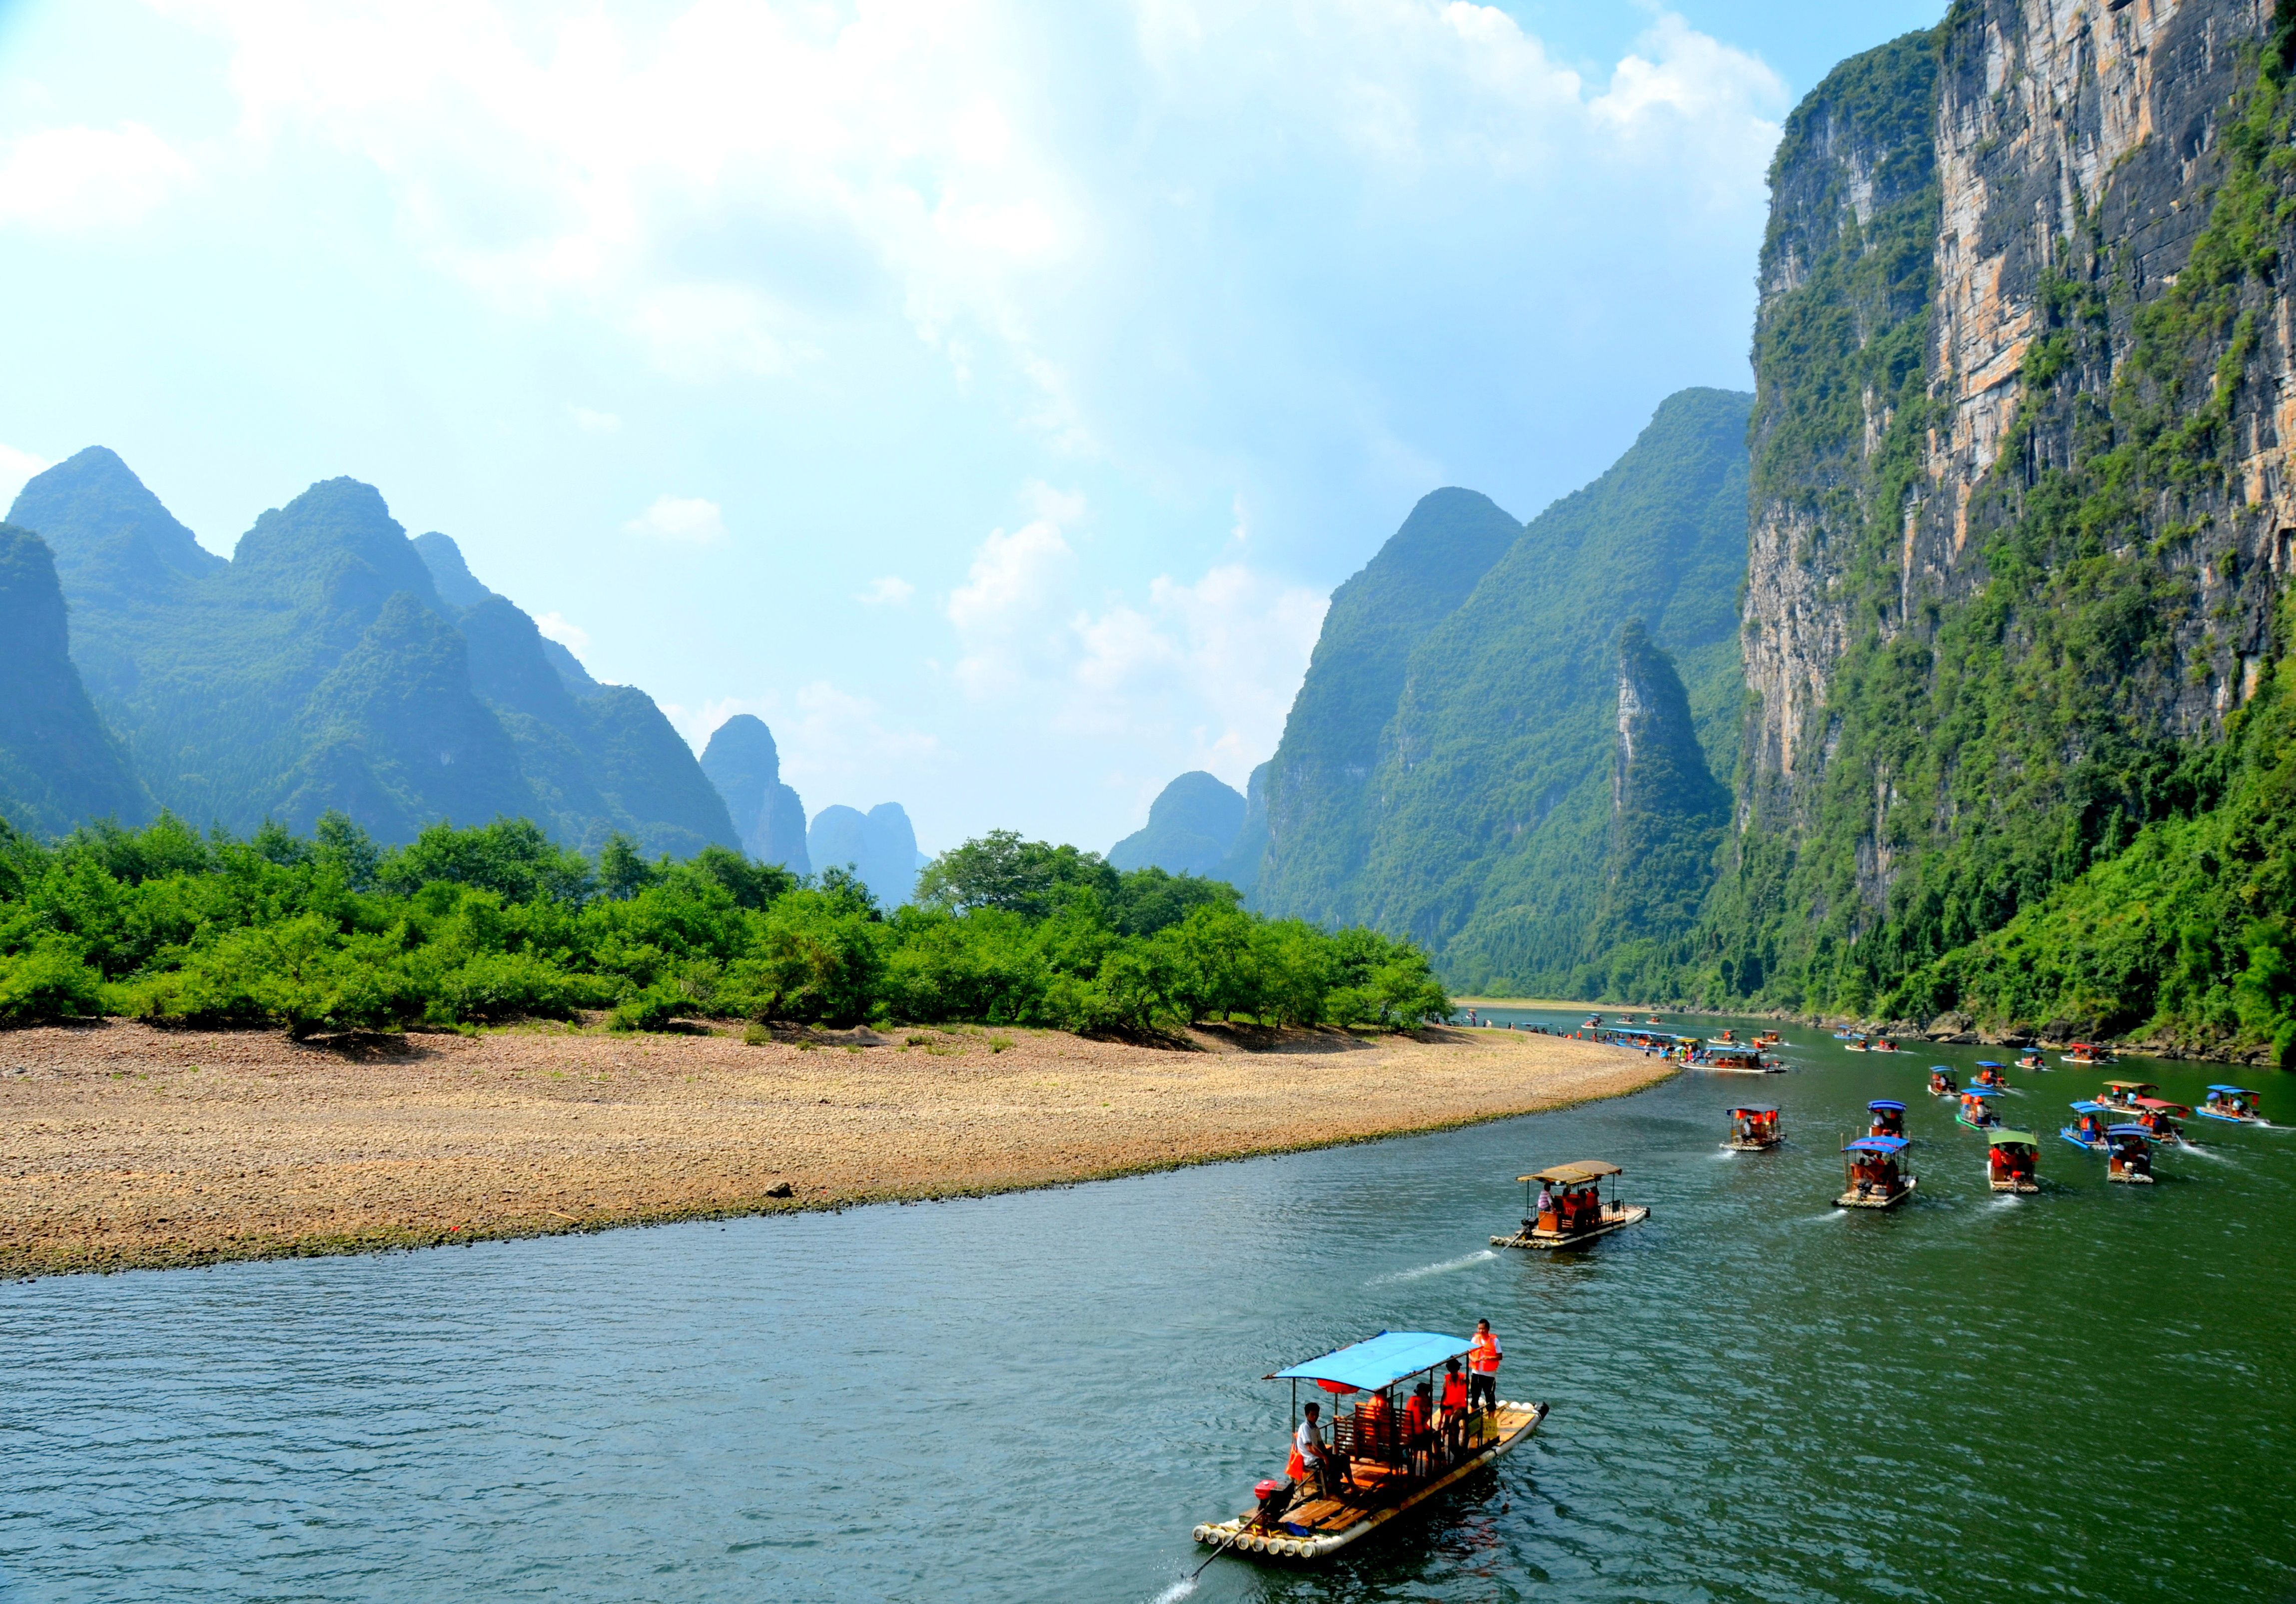 Li River One Of China's Most Popular Scenic Areas